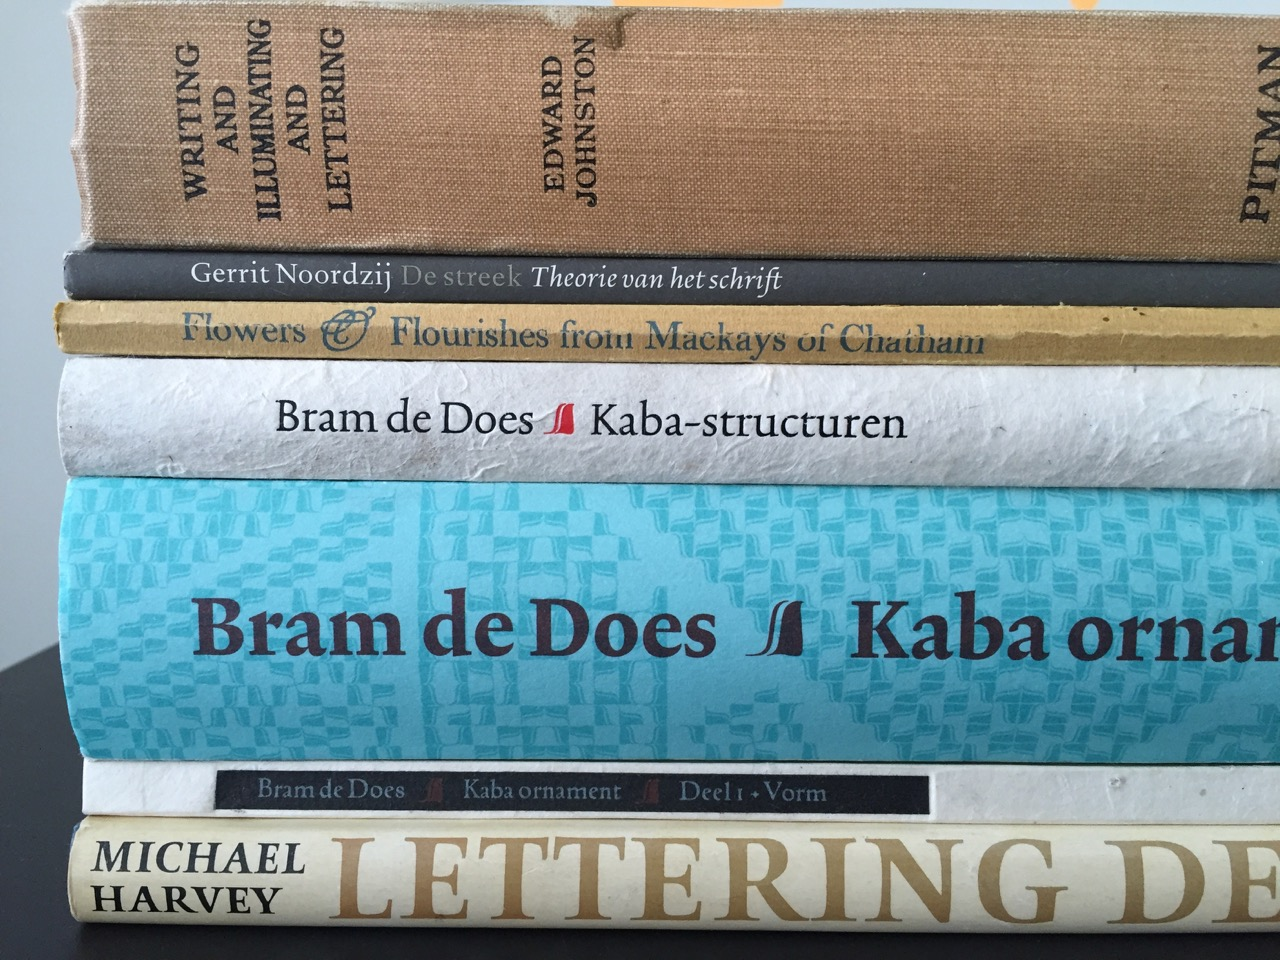 Books from The Hague studio.